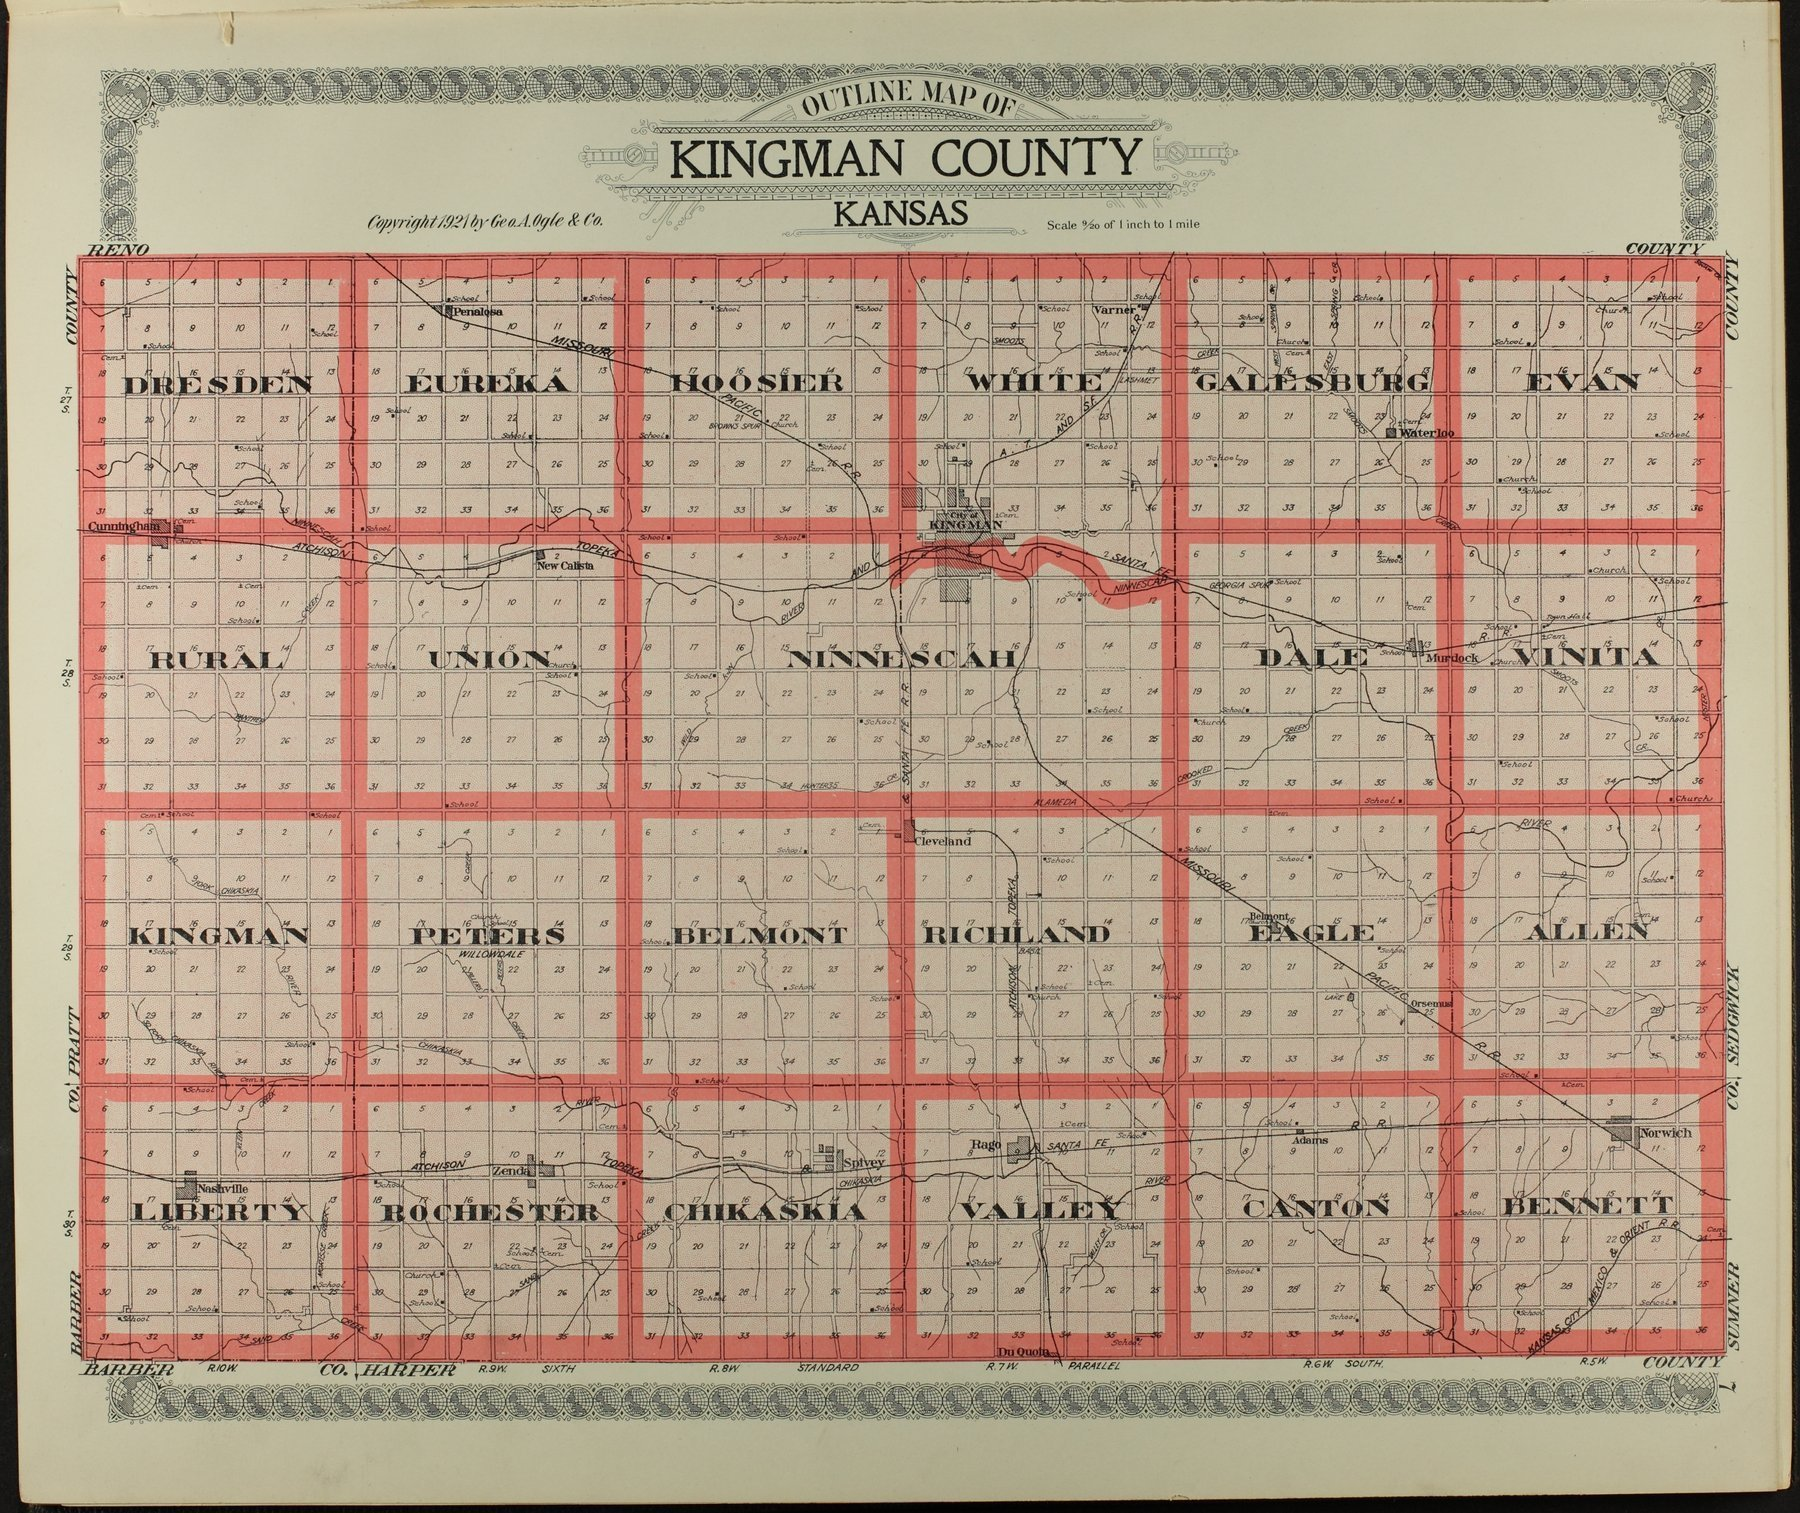 Standard atlas of Kingman County, Kansas - 7